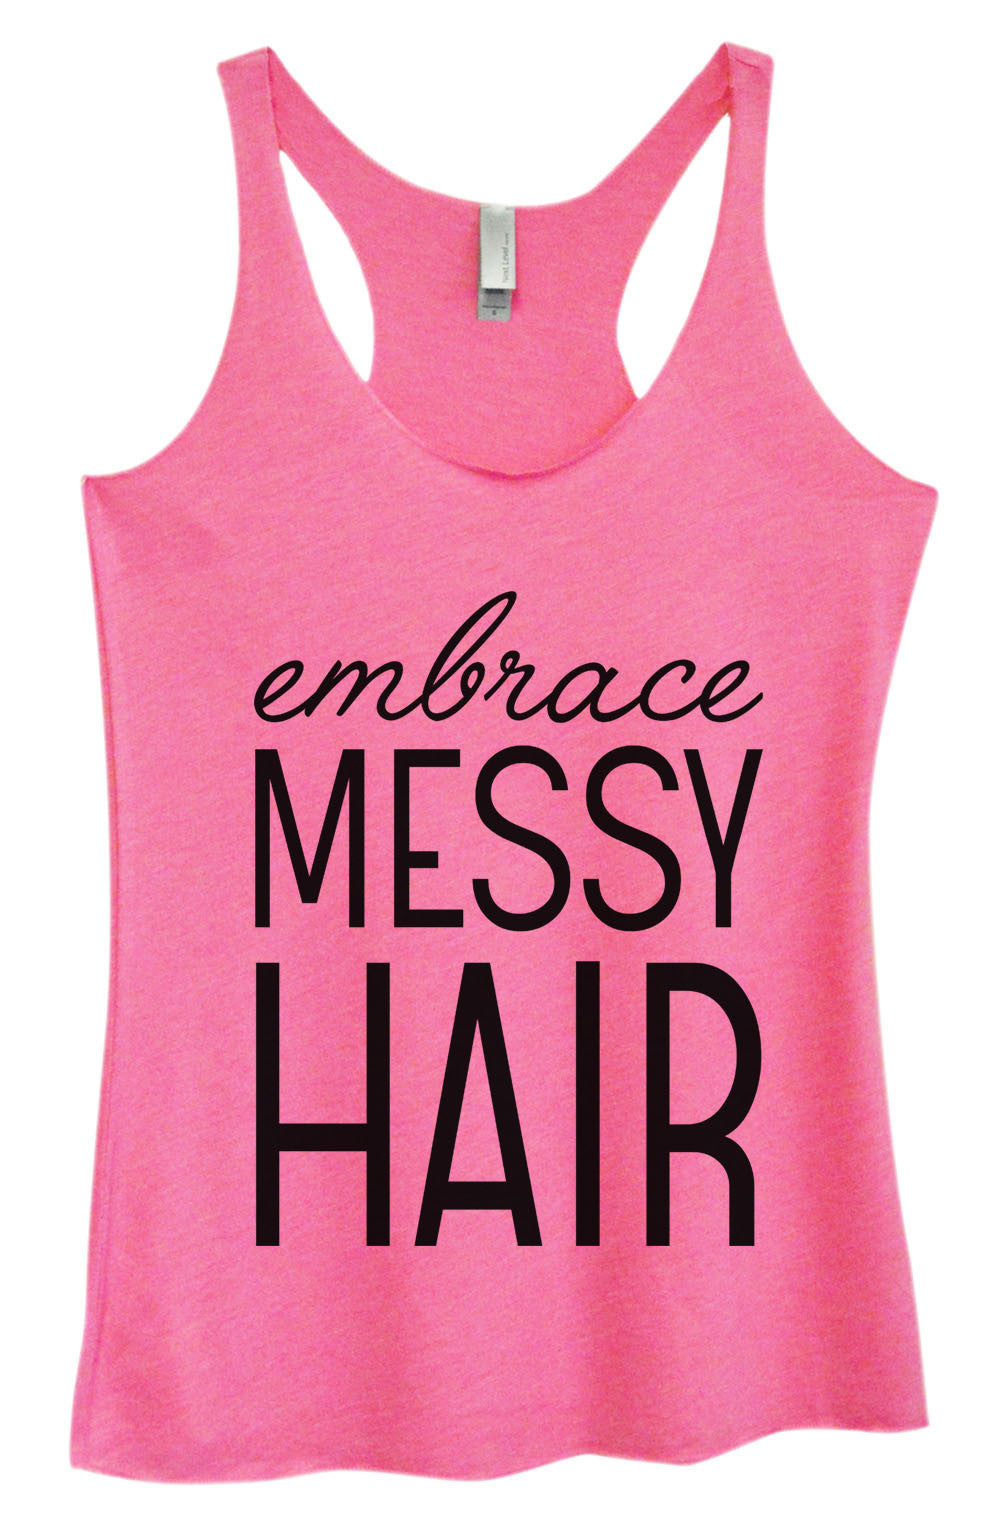 Womens Fashion Triblend Tank Top - Embrace Messy Hair - Tri-940 - Funny Shirts Tank Tops Burnouts and Triblends  - 4